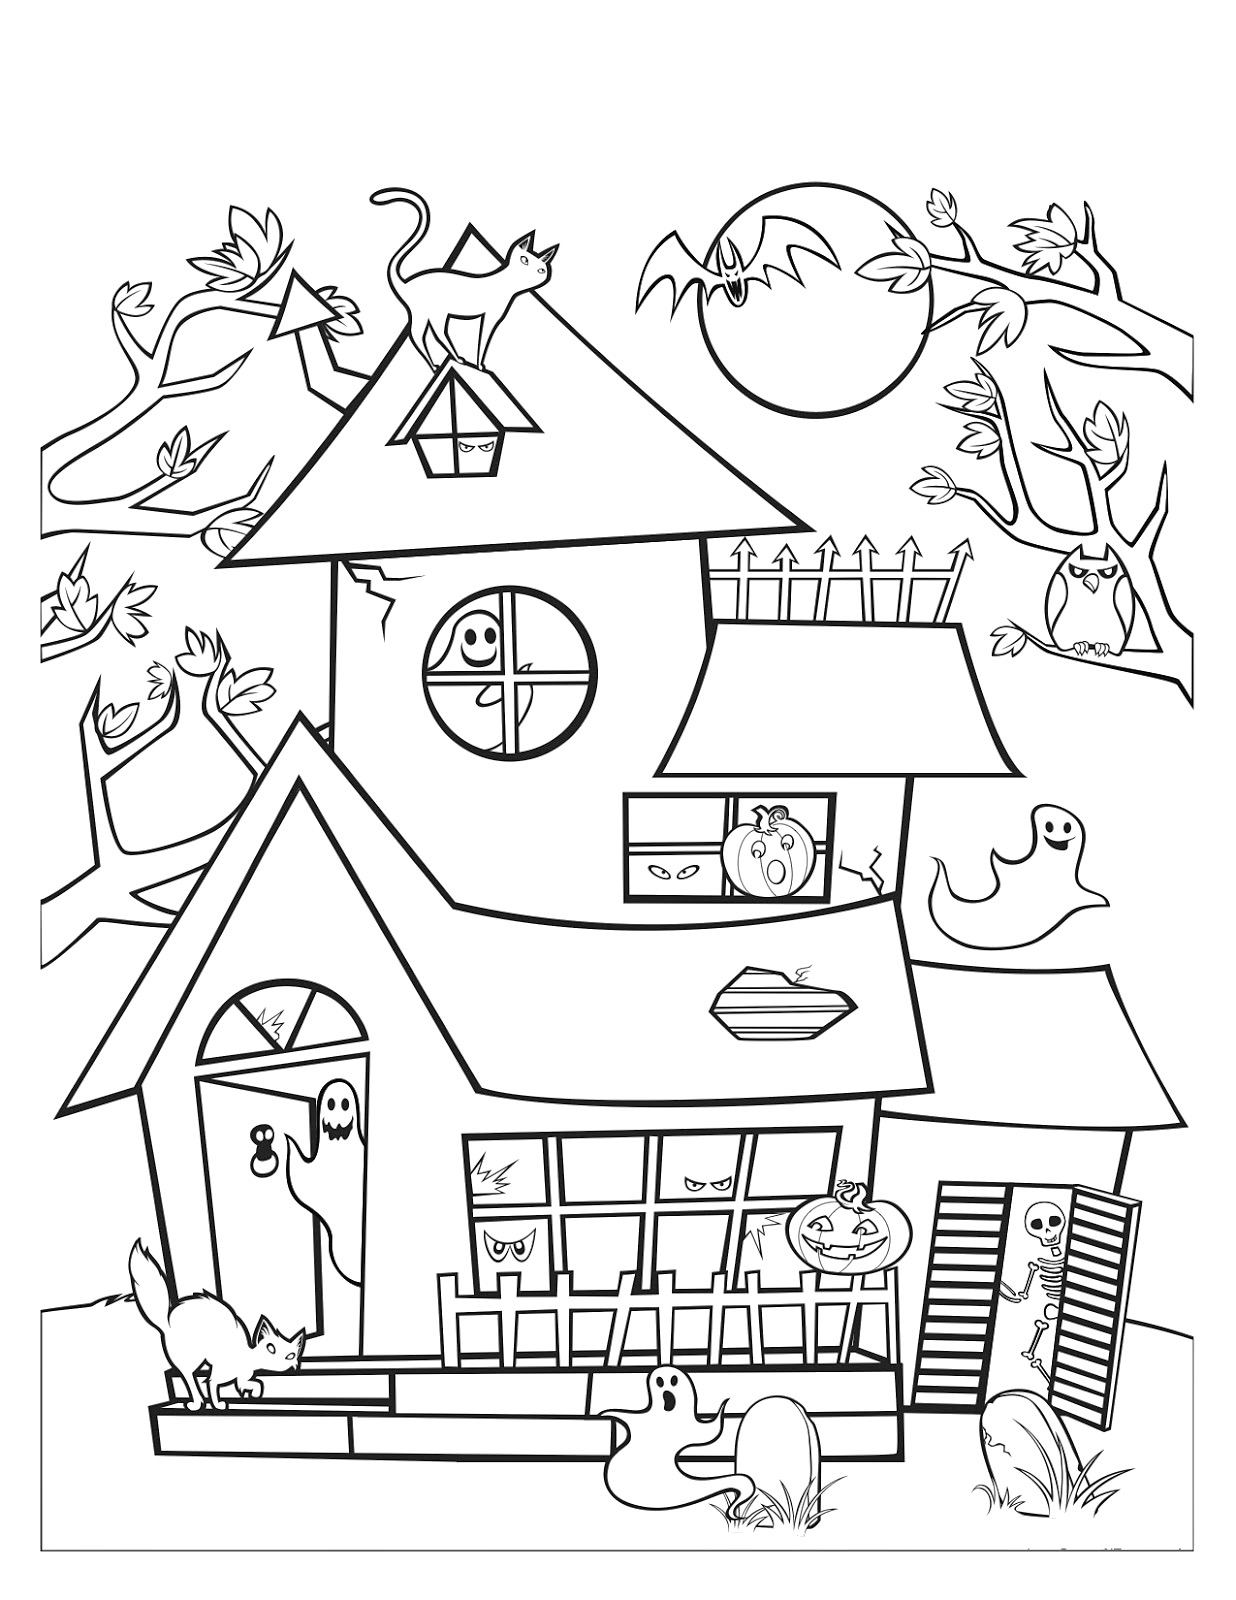 Drawn haunted house coloring page Halloween  Haunted Free How